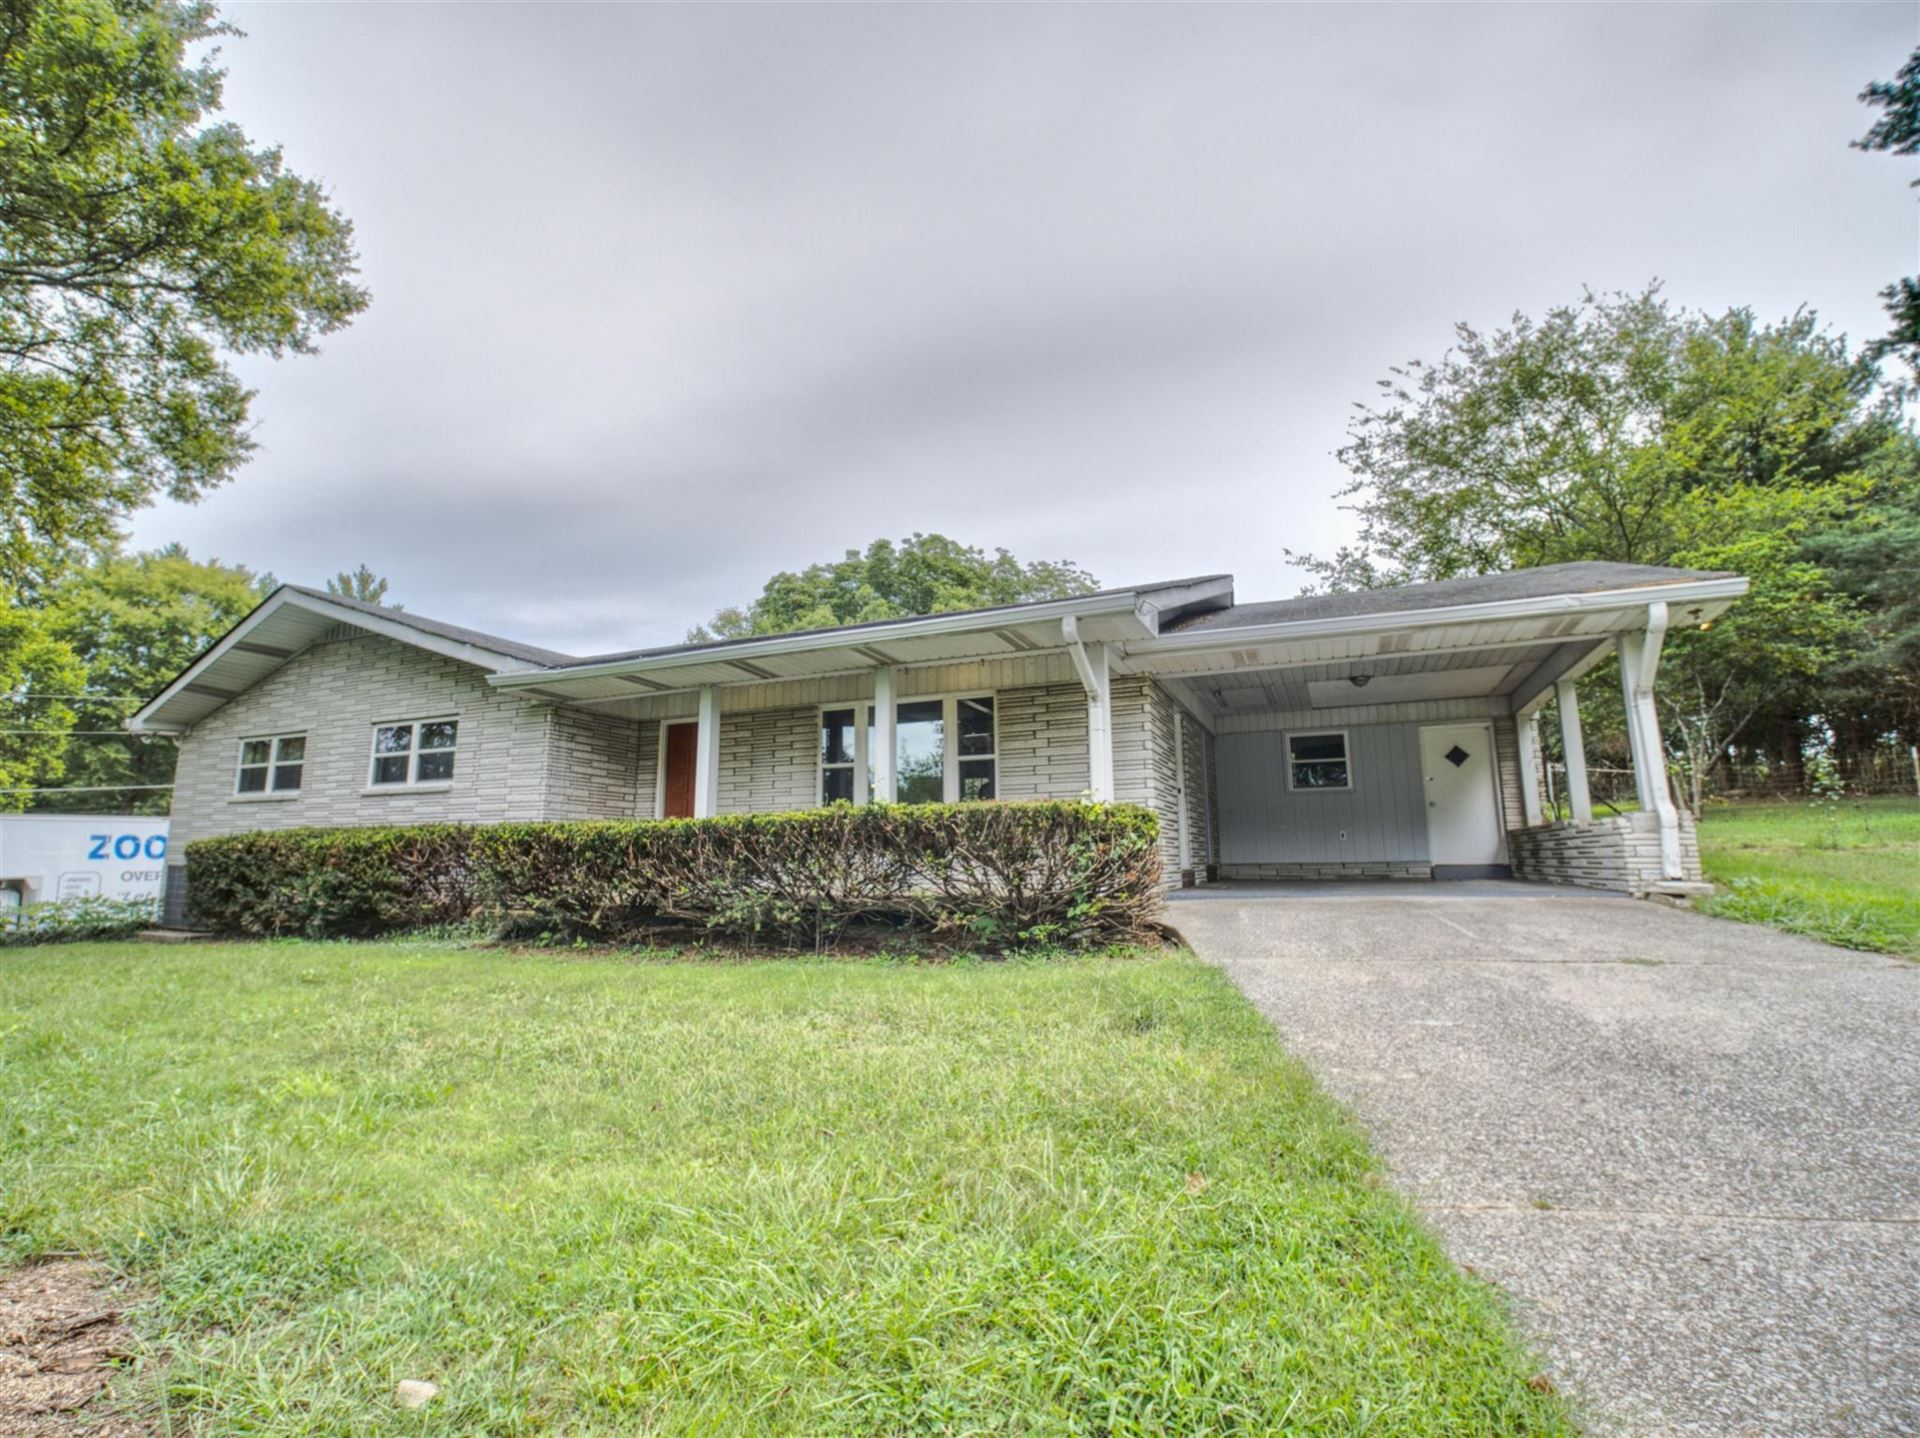 260 Dobbins Pike, Gallatin, TN 37066 - MLS#: 2237826